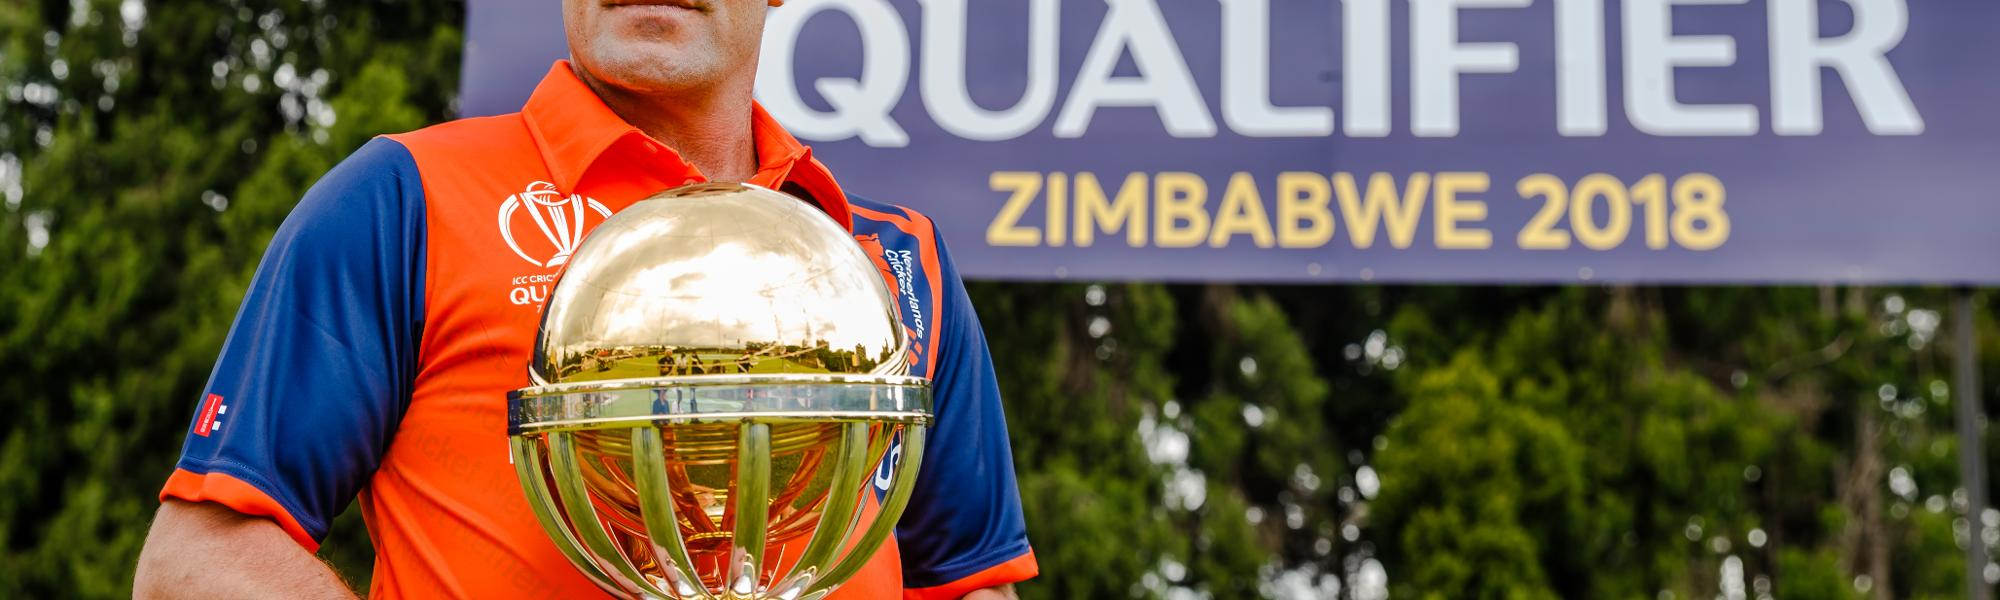 Peter Borren Netherlands captain holds the ICC World Cup trophy at Harare Sports Club ahead of the ICC Cricket World Cup Qualifiers in Zimbabwe, 26 February 2018